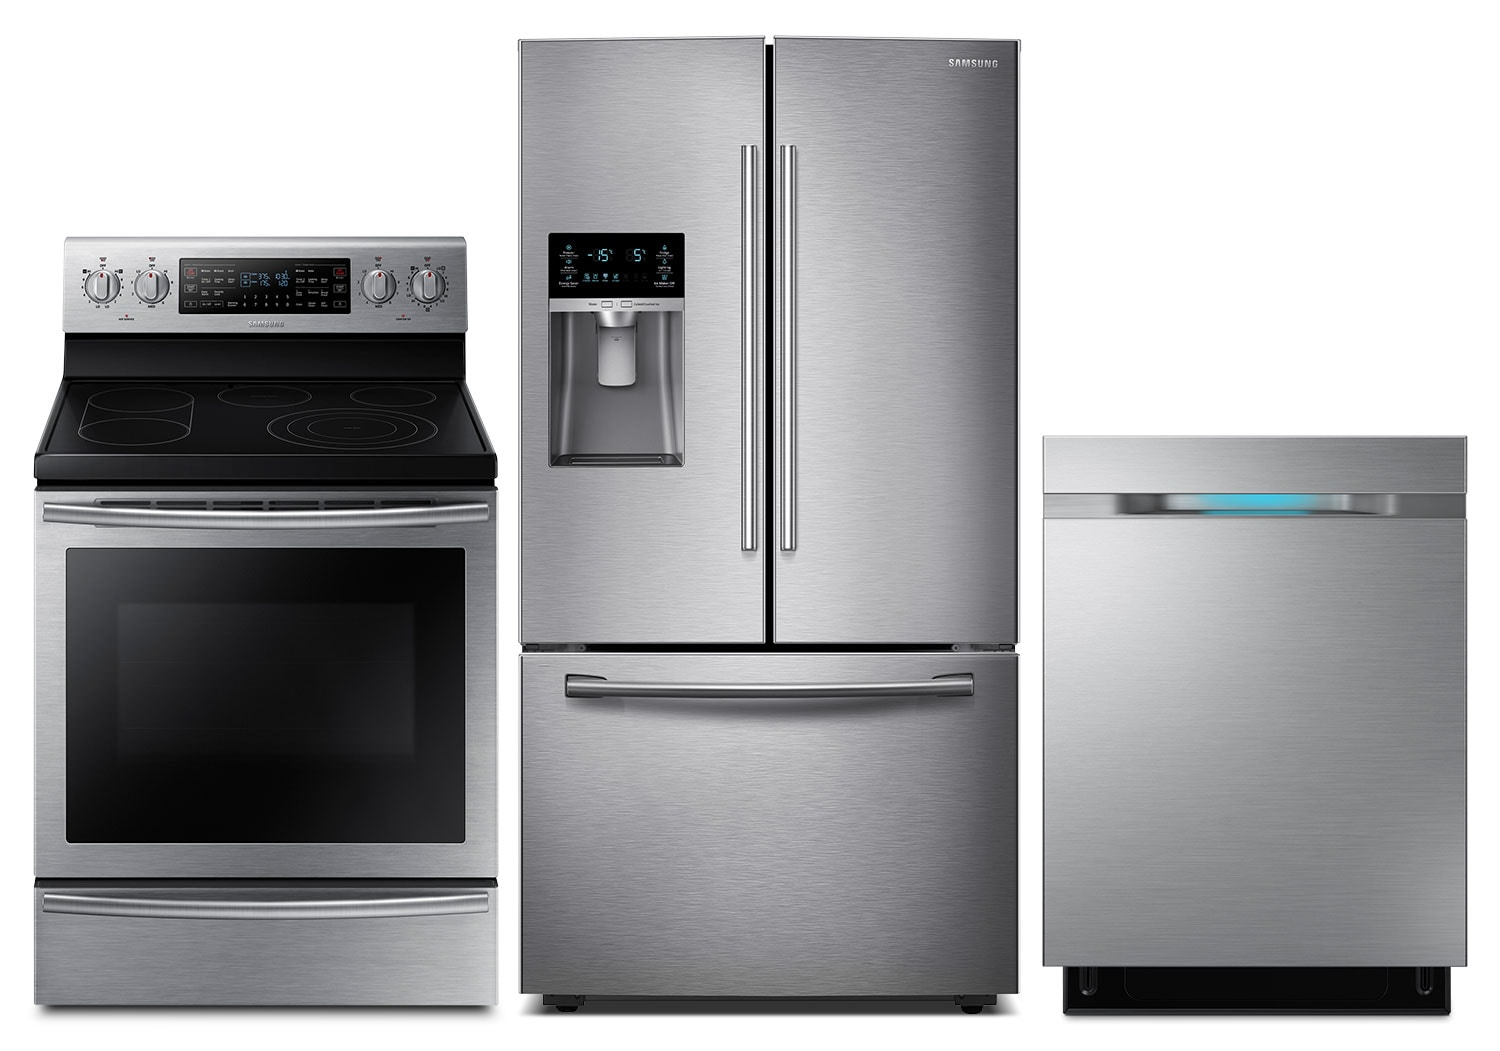 Samsung 28 Cu. Ft. Refrigerator, 5.9 Cu. Ft. Range and Dishwasher - Stainless Steel